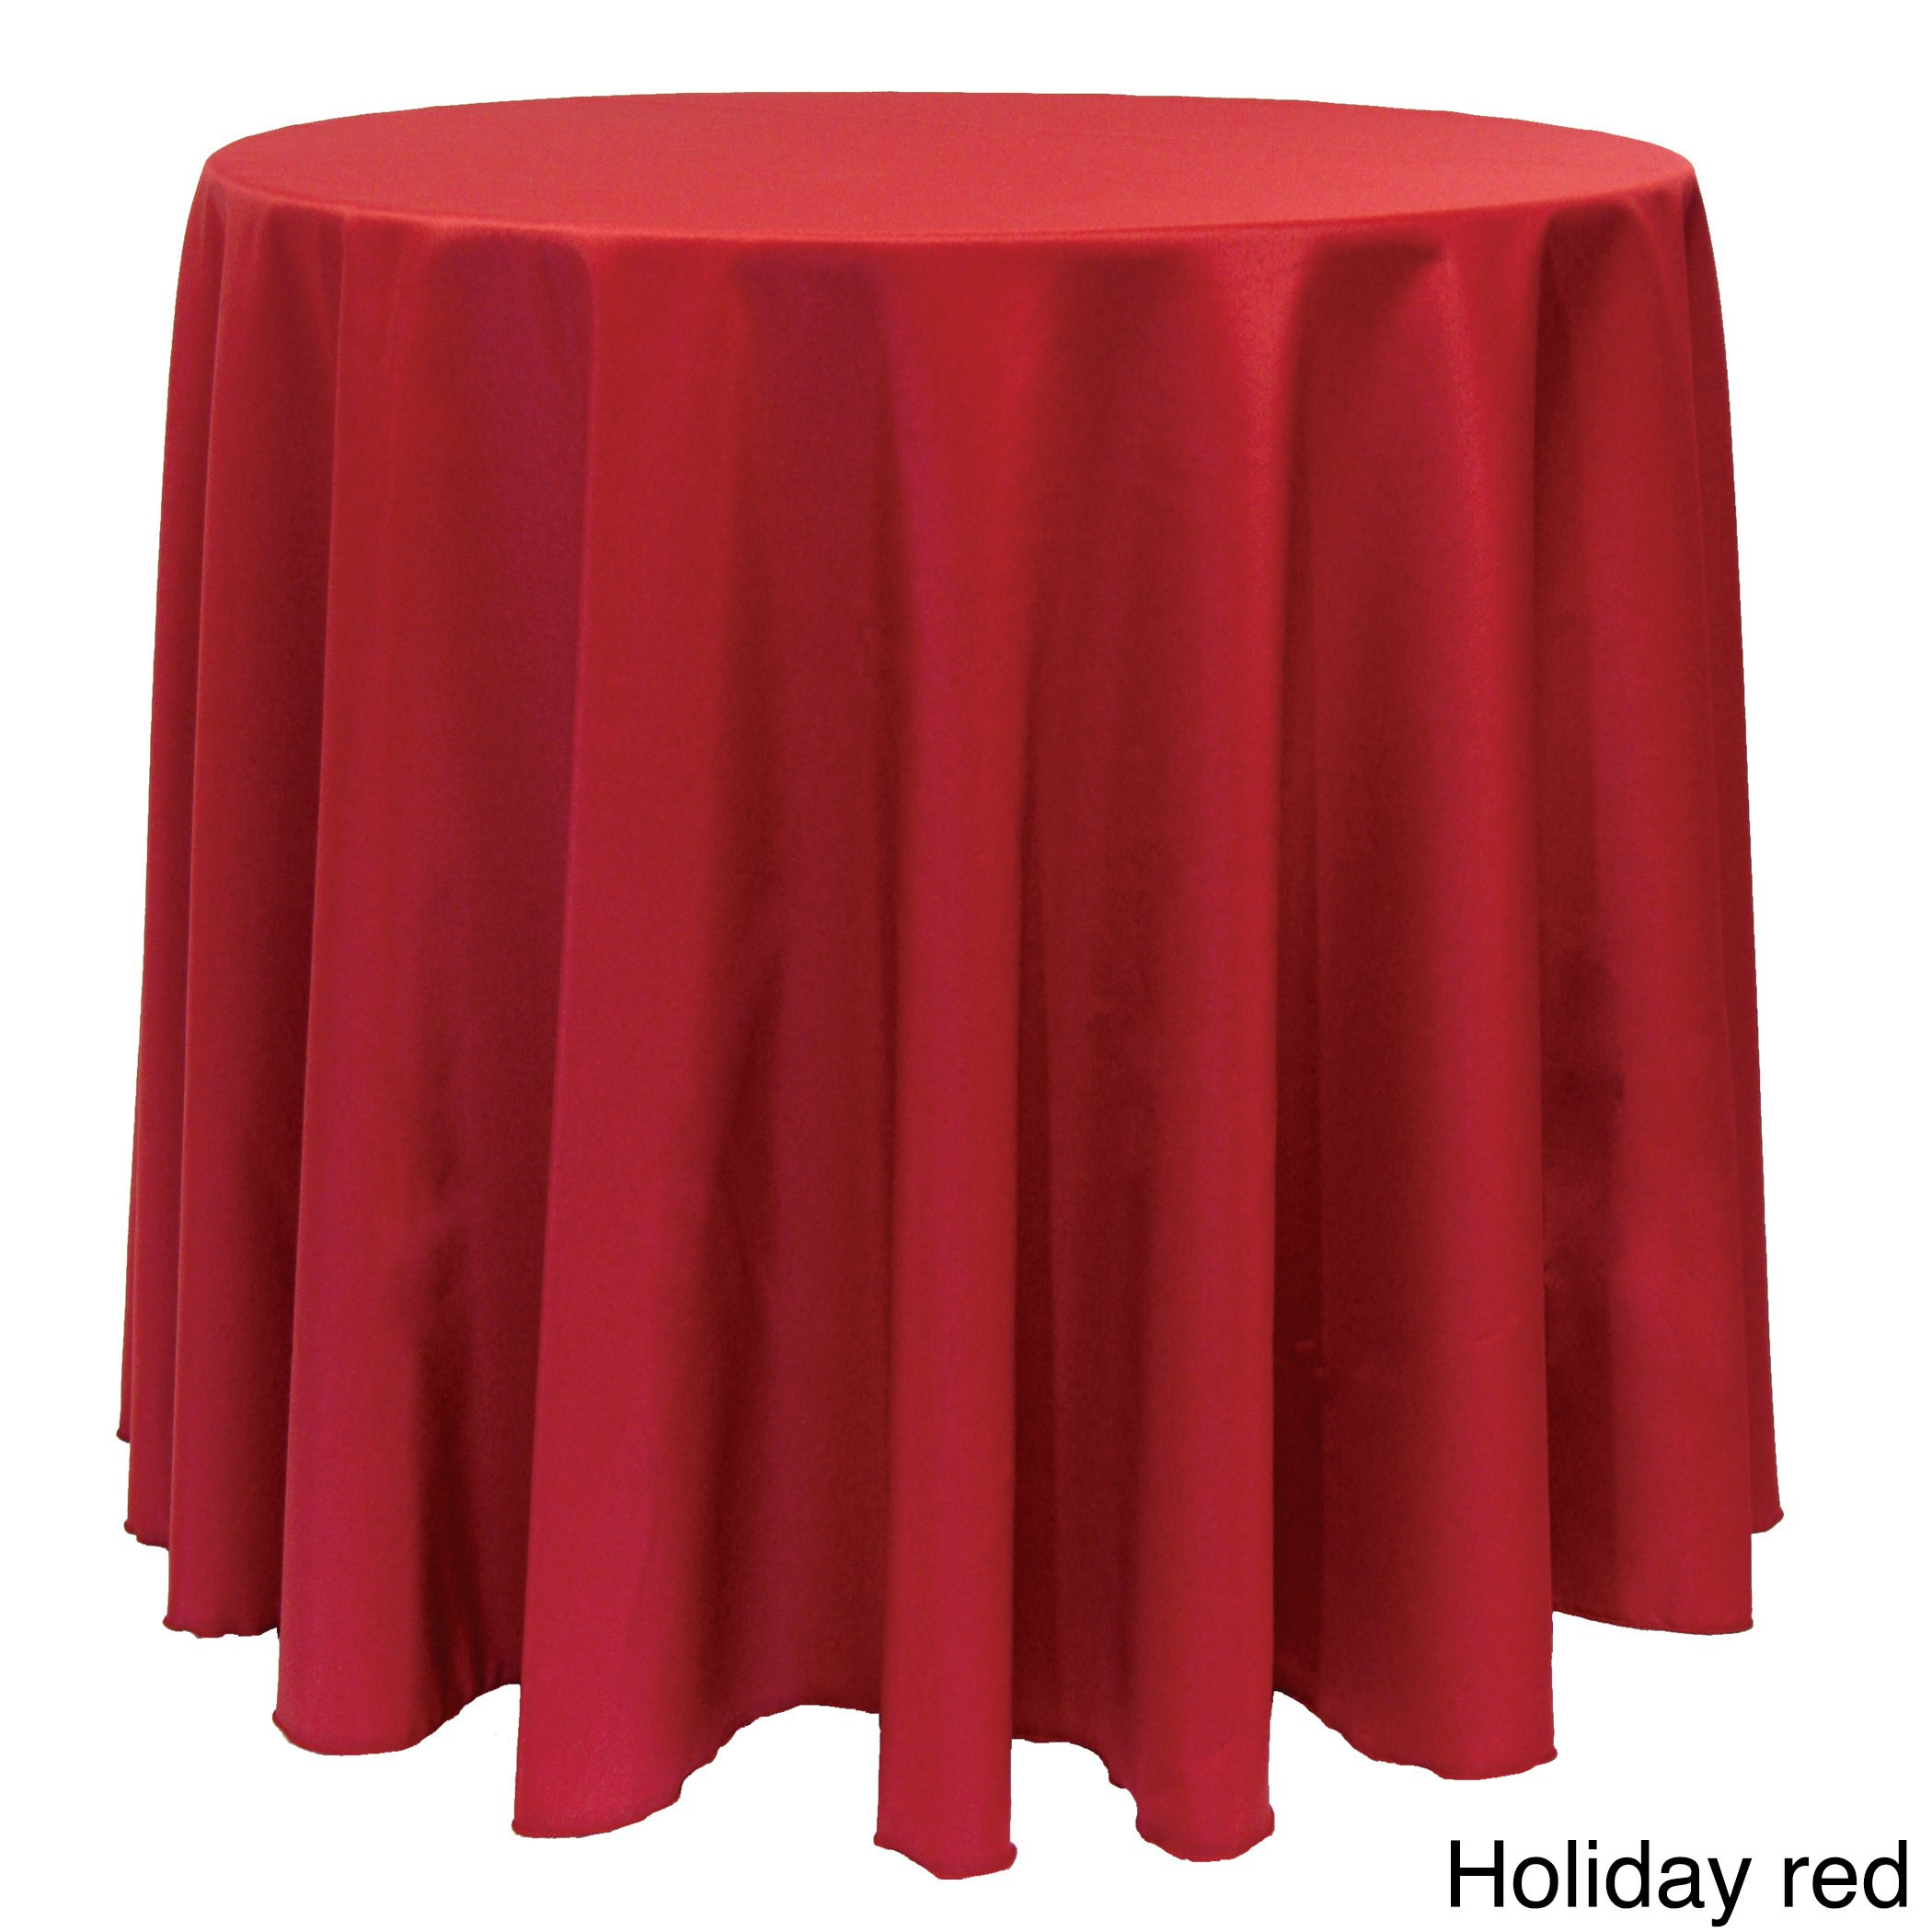 vibrant solid color inch round tablecloth free shipping for accent table orders over target vases small living room chairs decorative pieces dining brown linen rectangle tall